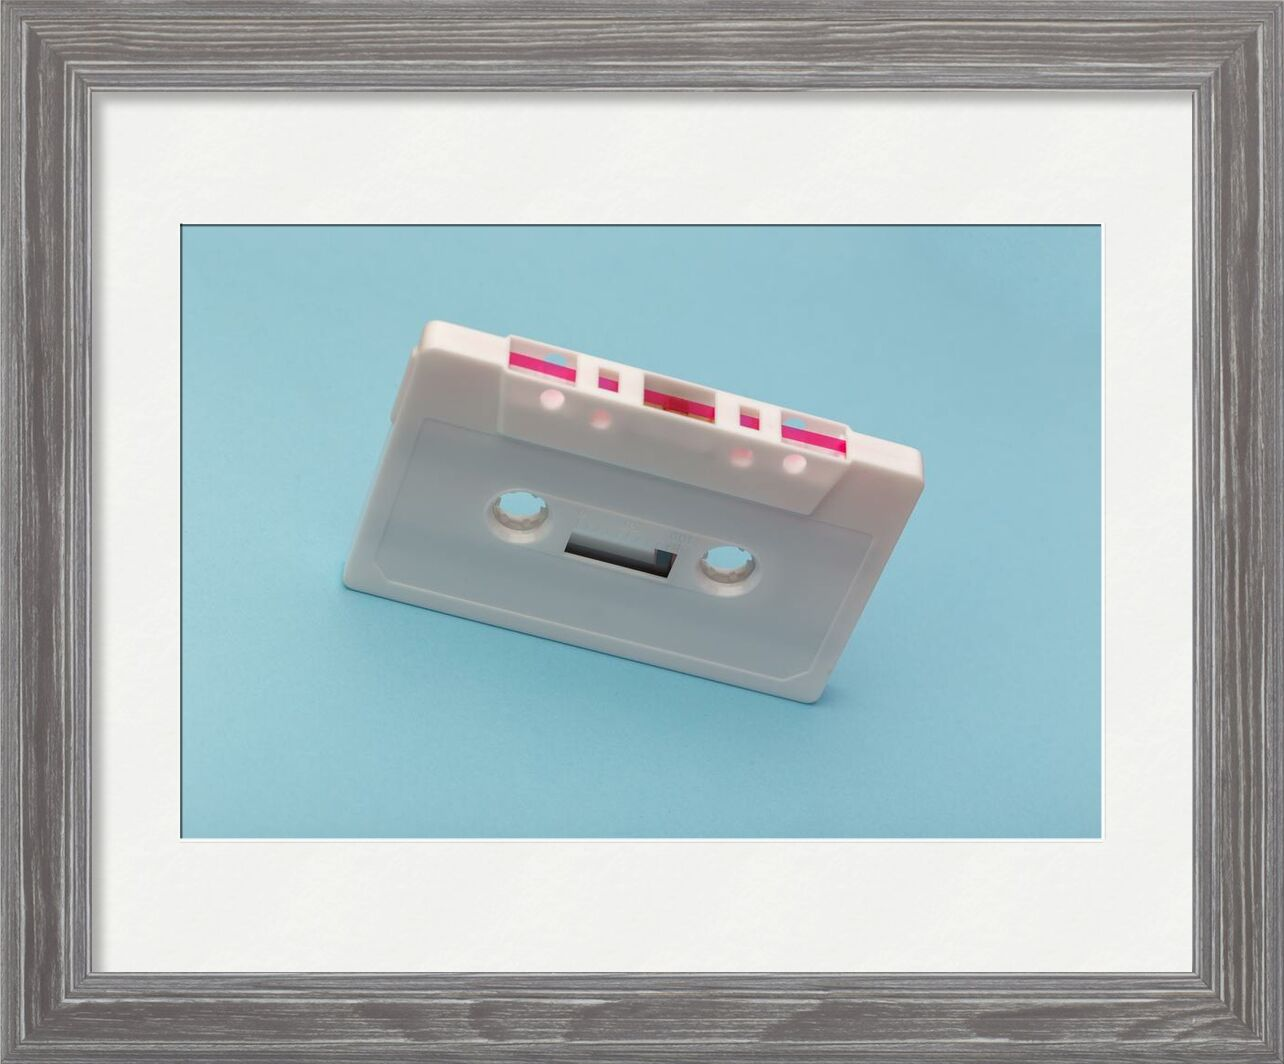 Cassette from Aliss ART, Prodi Art, audio, classic, device, equipment, music, pink, record, retro, sound, technology, vintage, white, blank, blue background, cassette, cassette tape, plastic, recording, style  tape